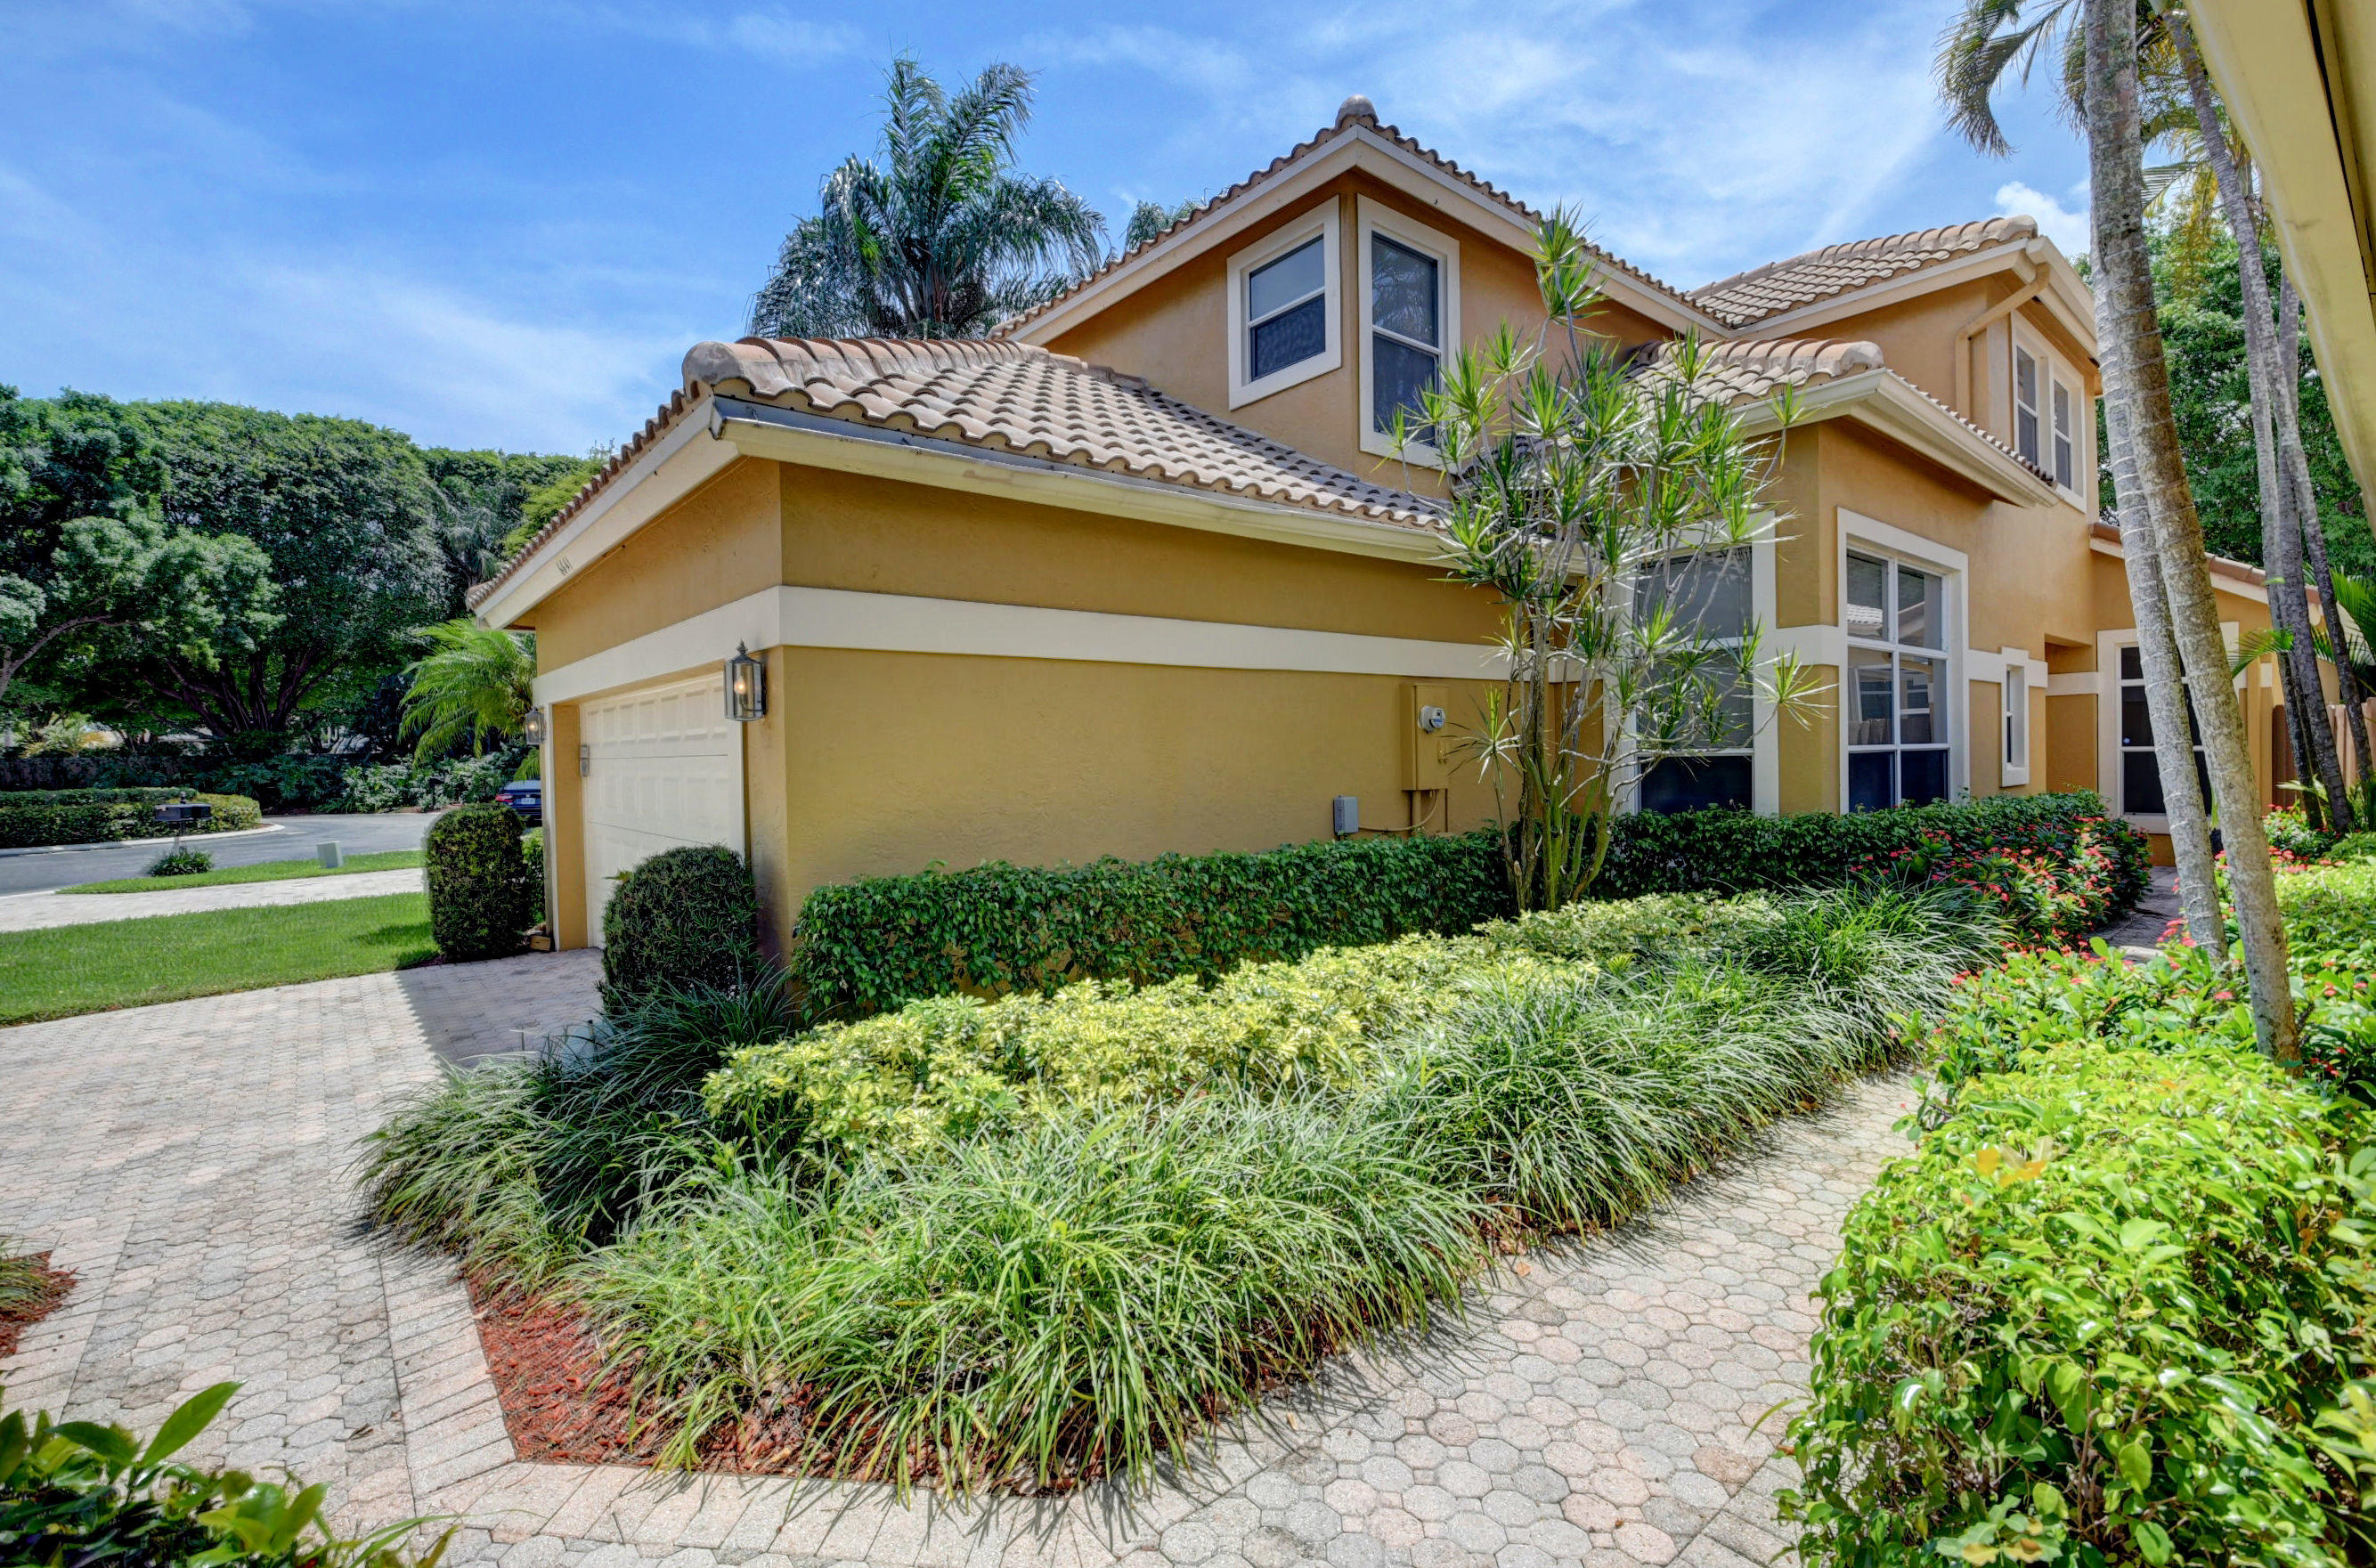 6641 NW 26th Way  For Sale 10713125, FL